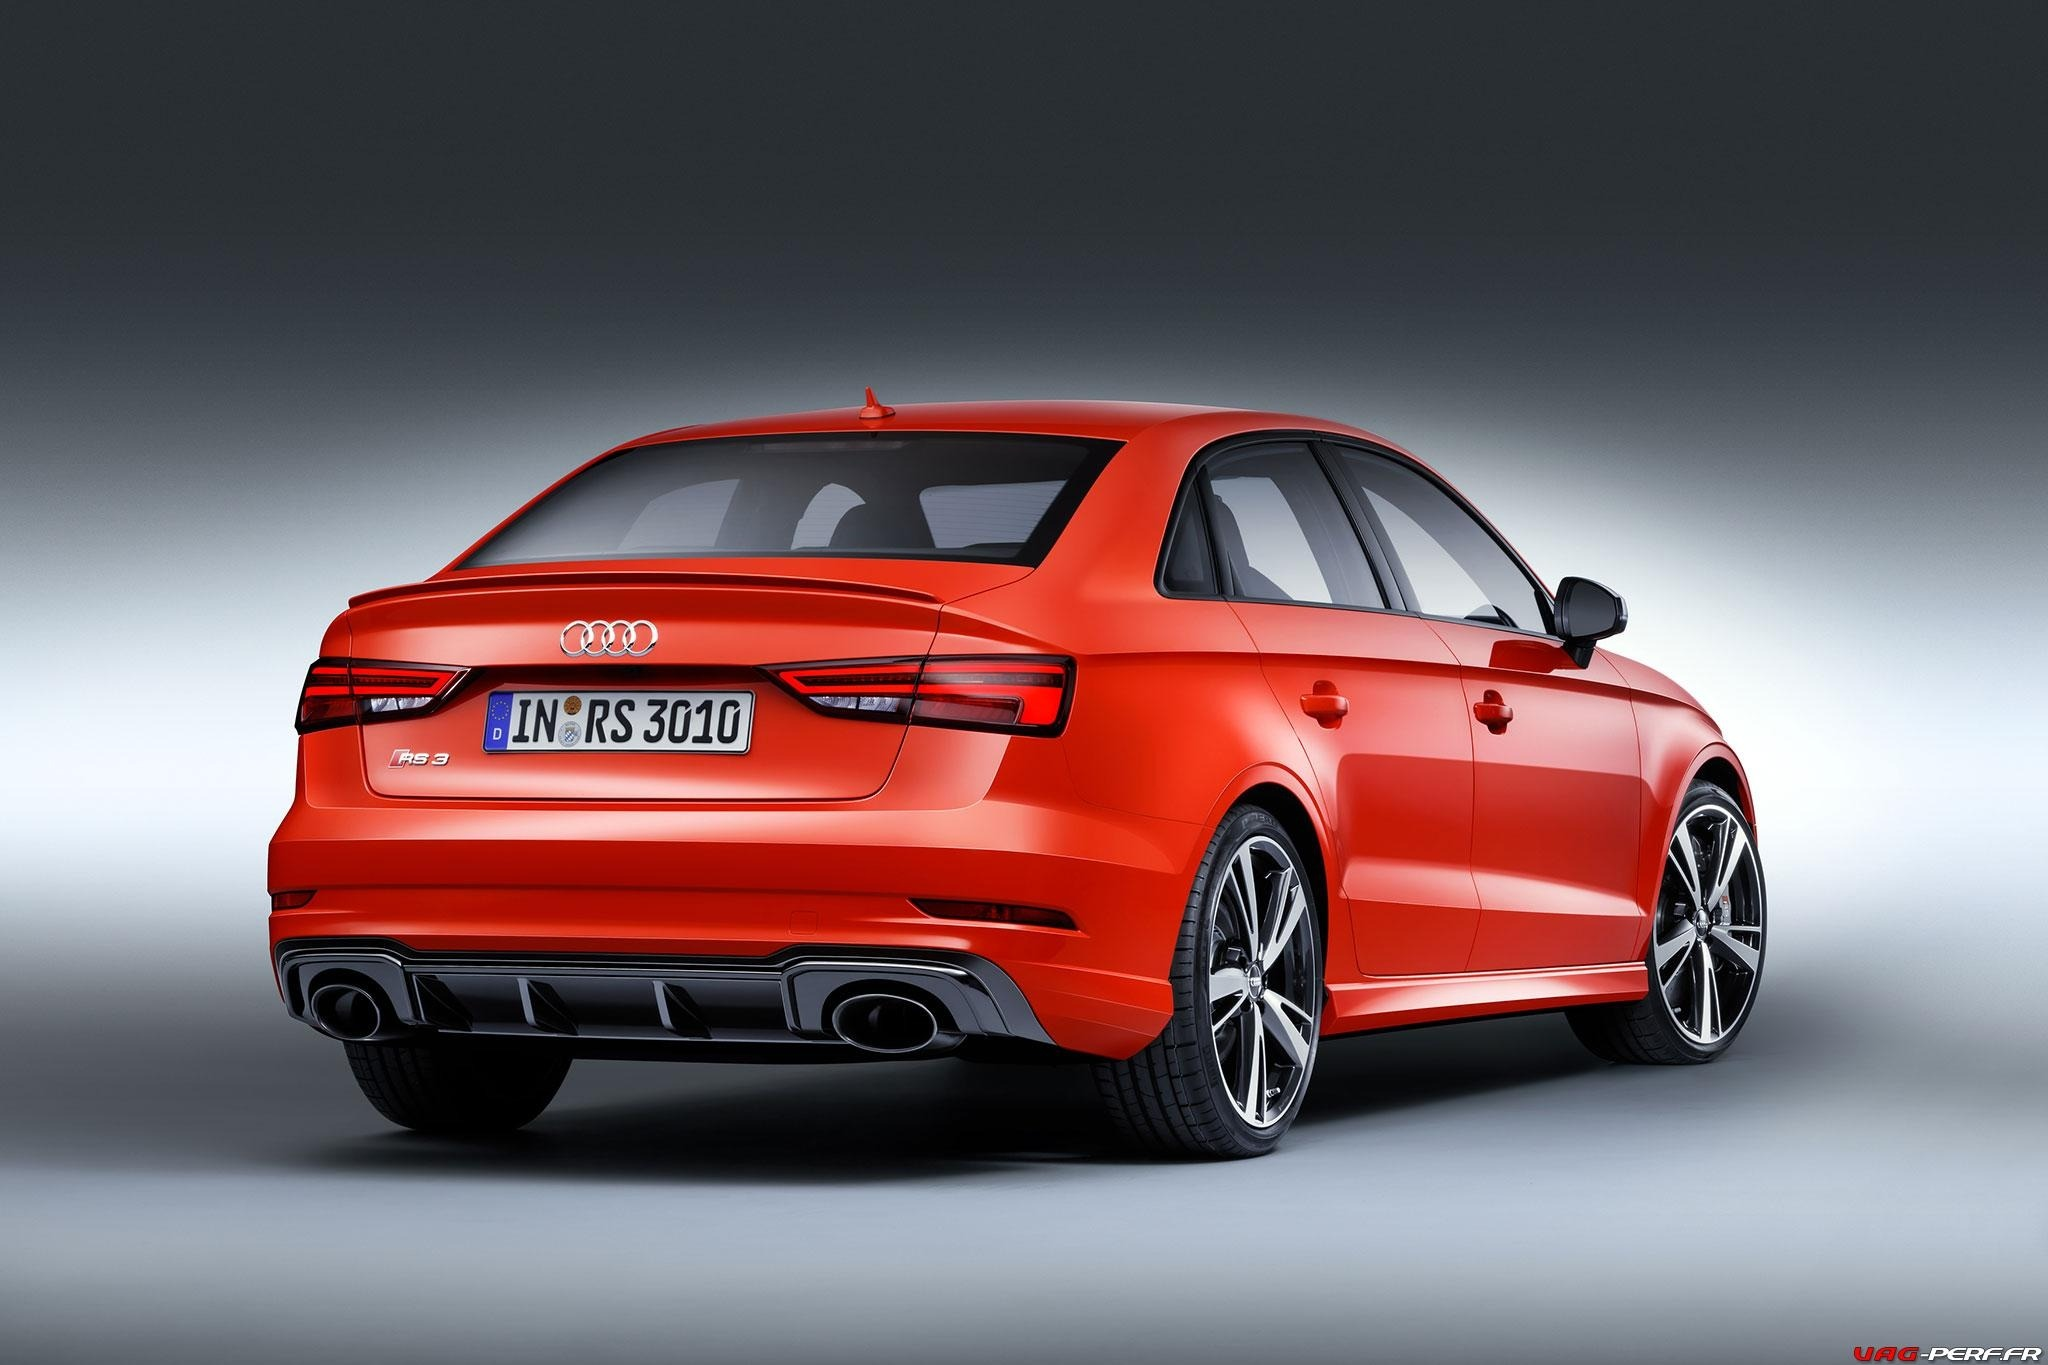 2016_Audi-RS3-Sedan-Officiel_04